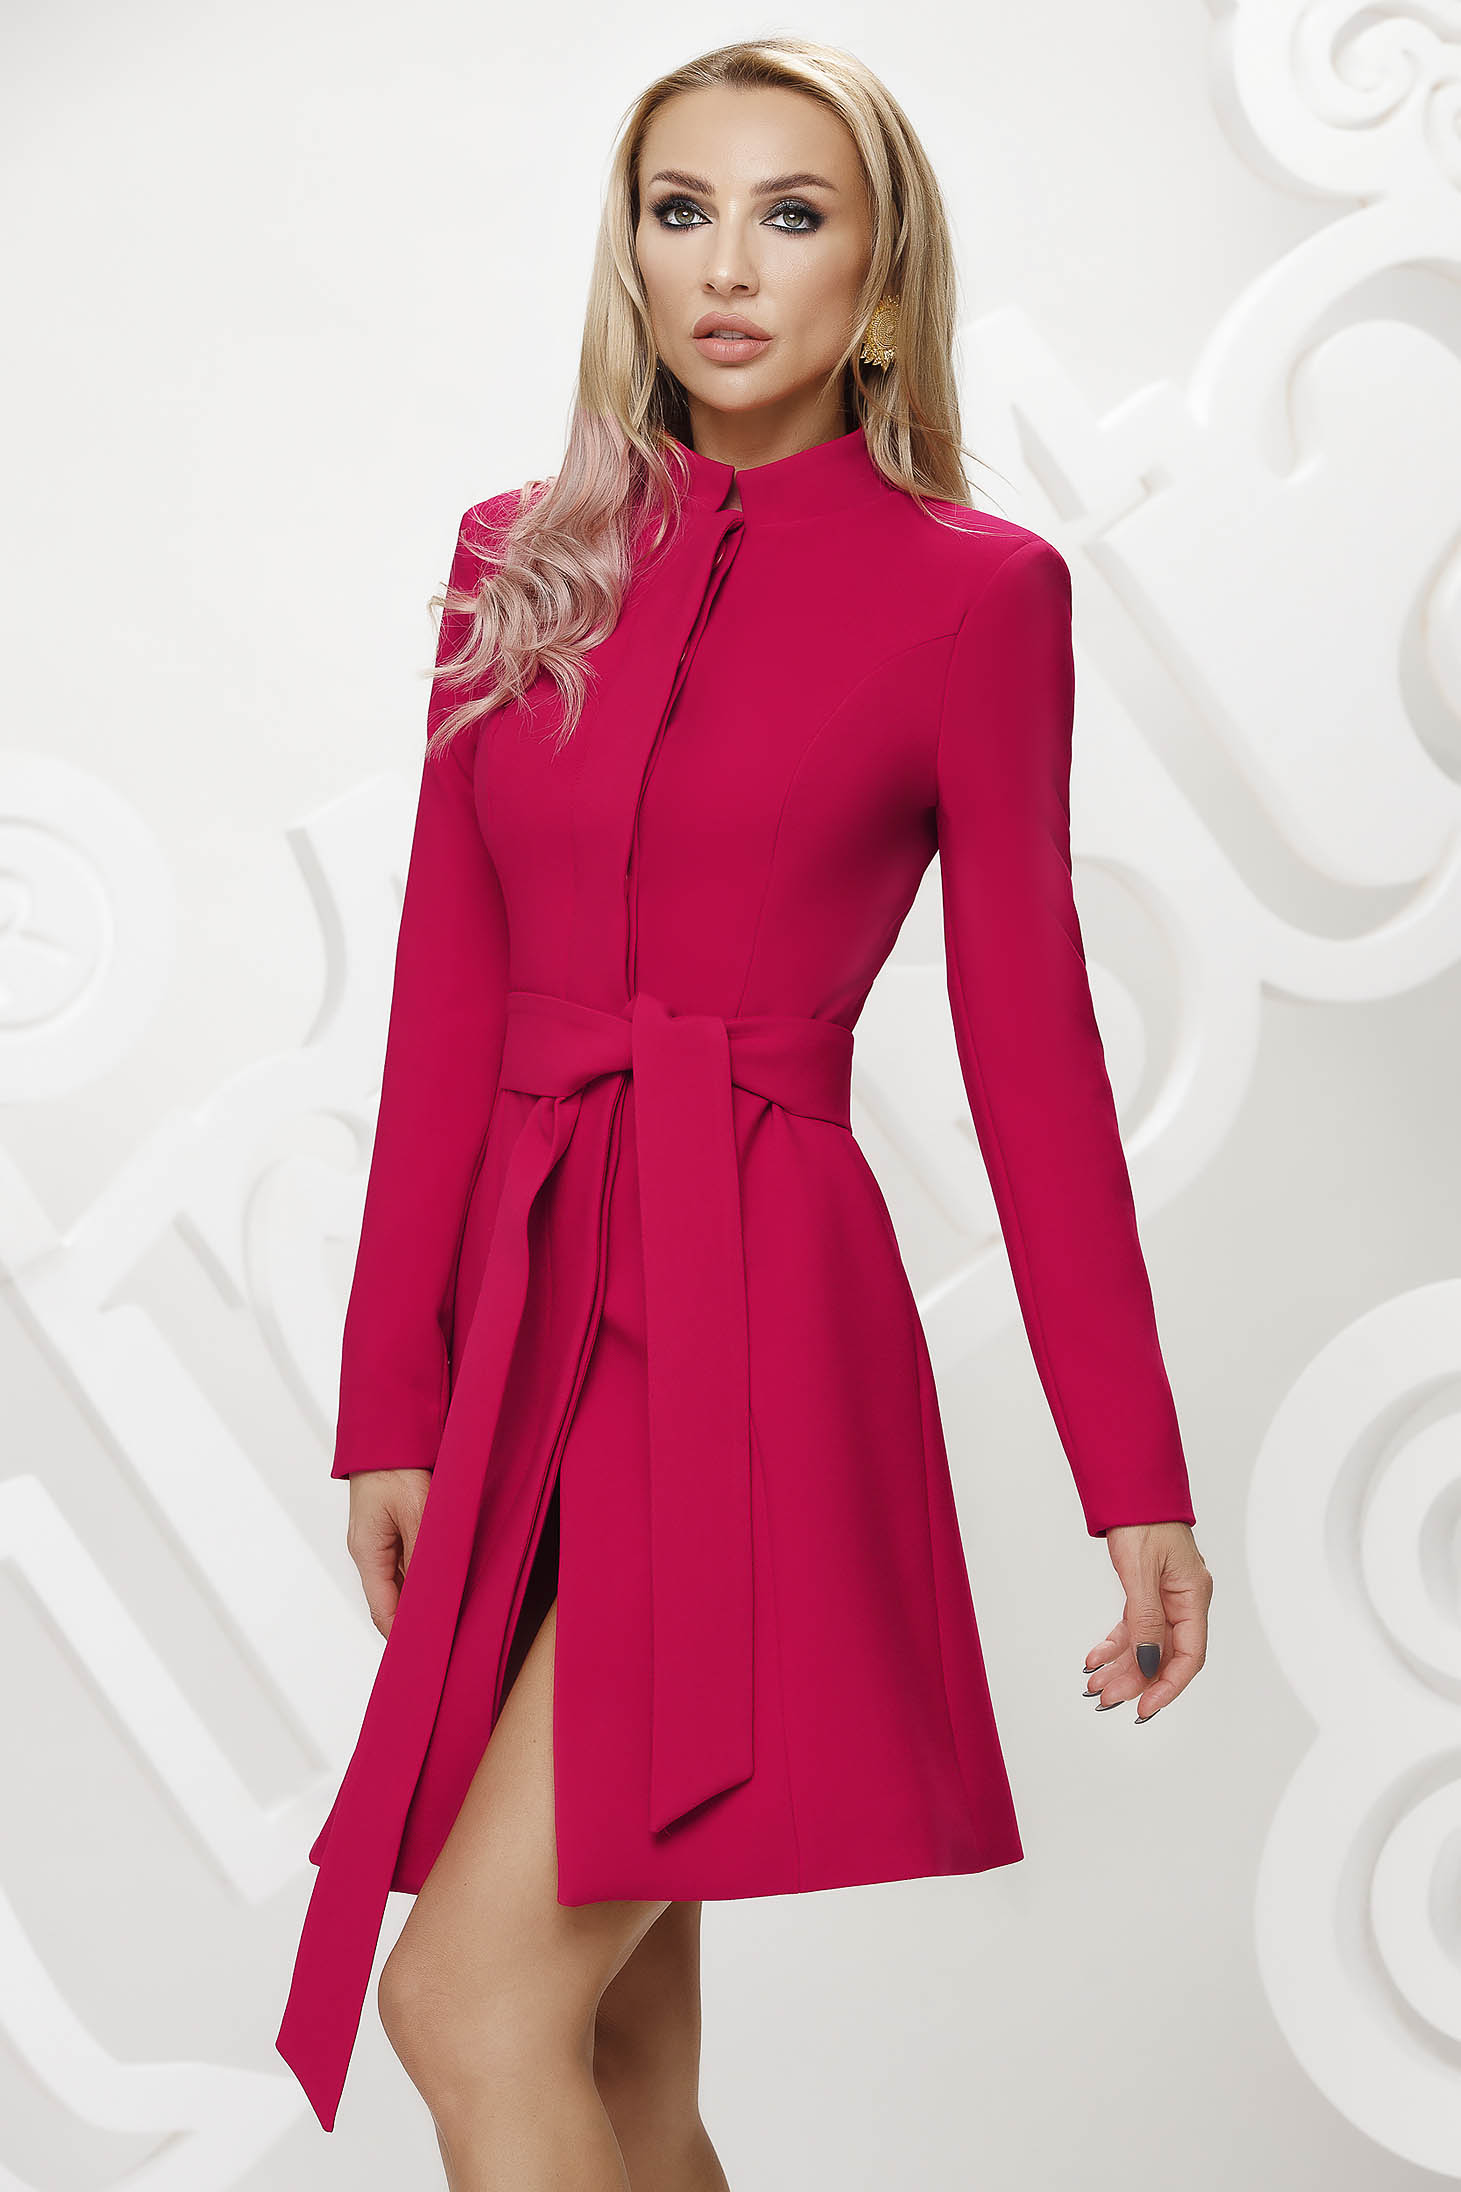 Fuchsia trenchcoat tented short cut elegant accessorized with tied waistband bow accessory